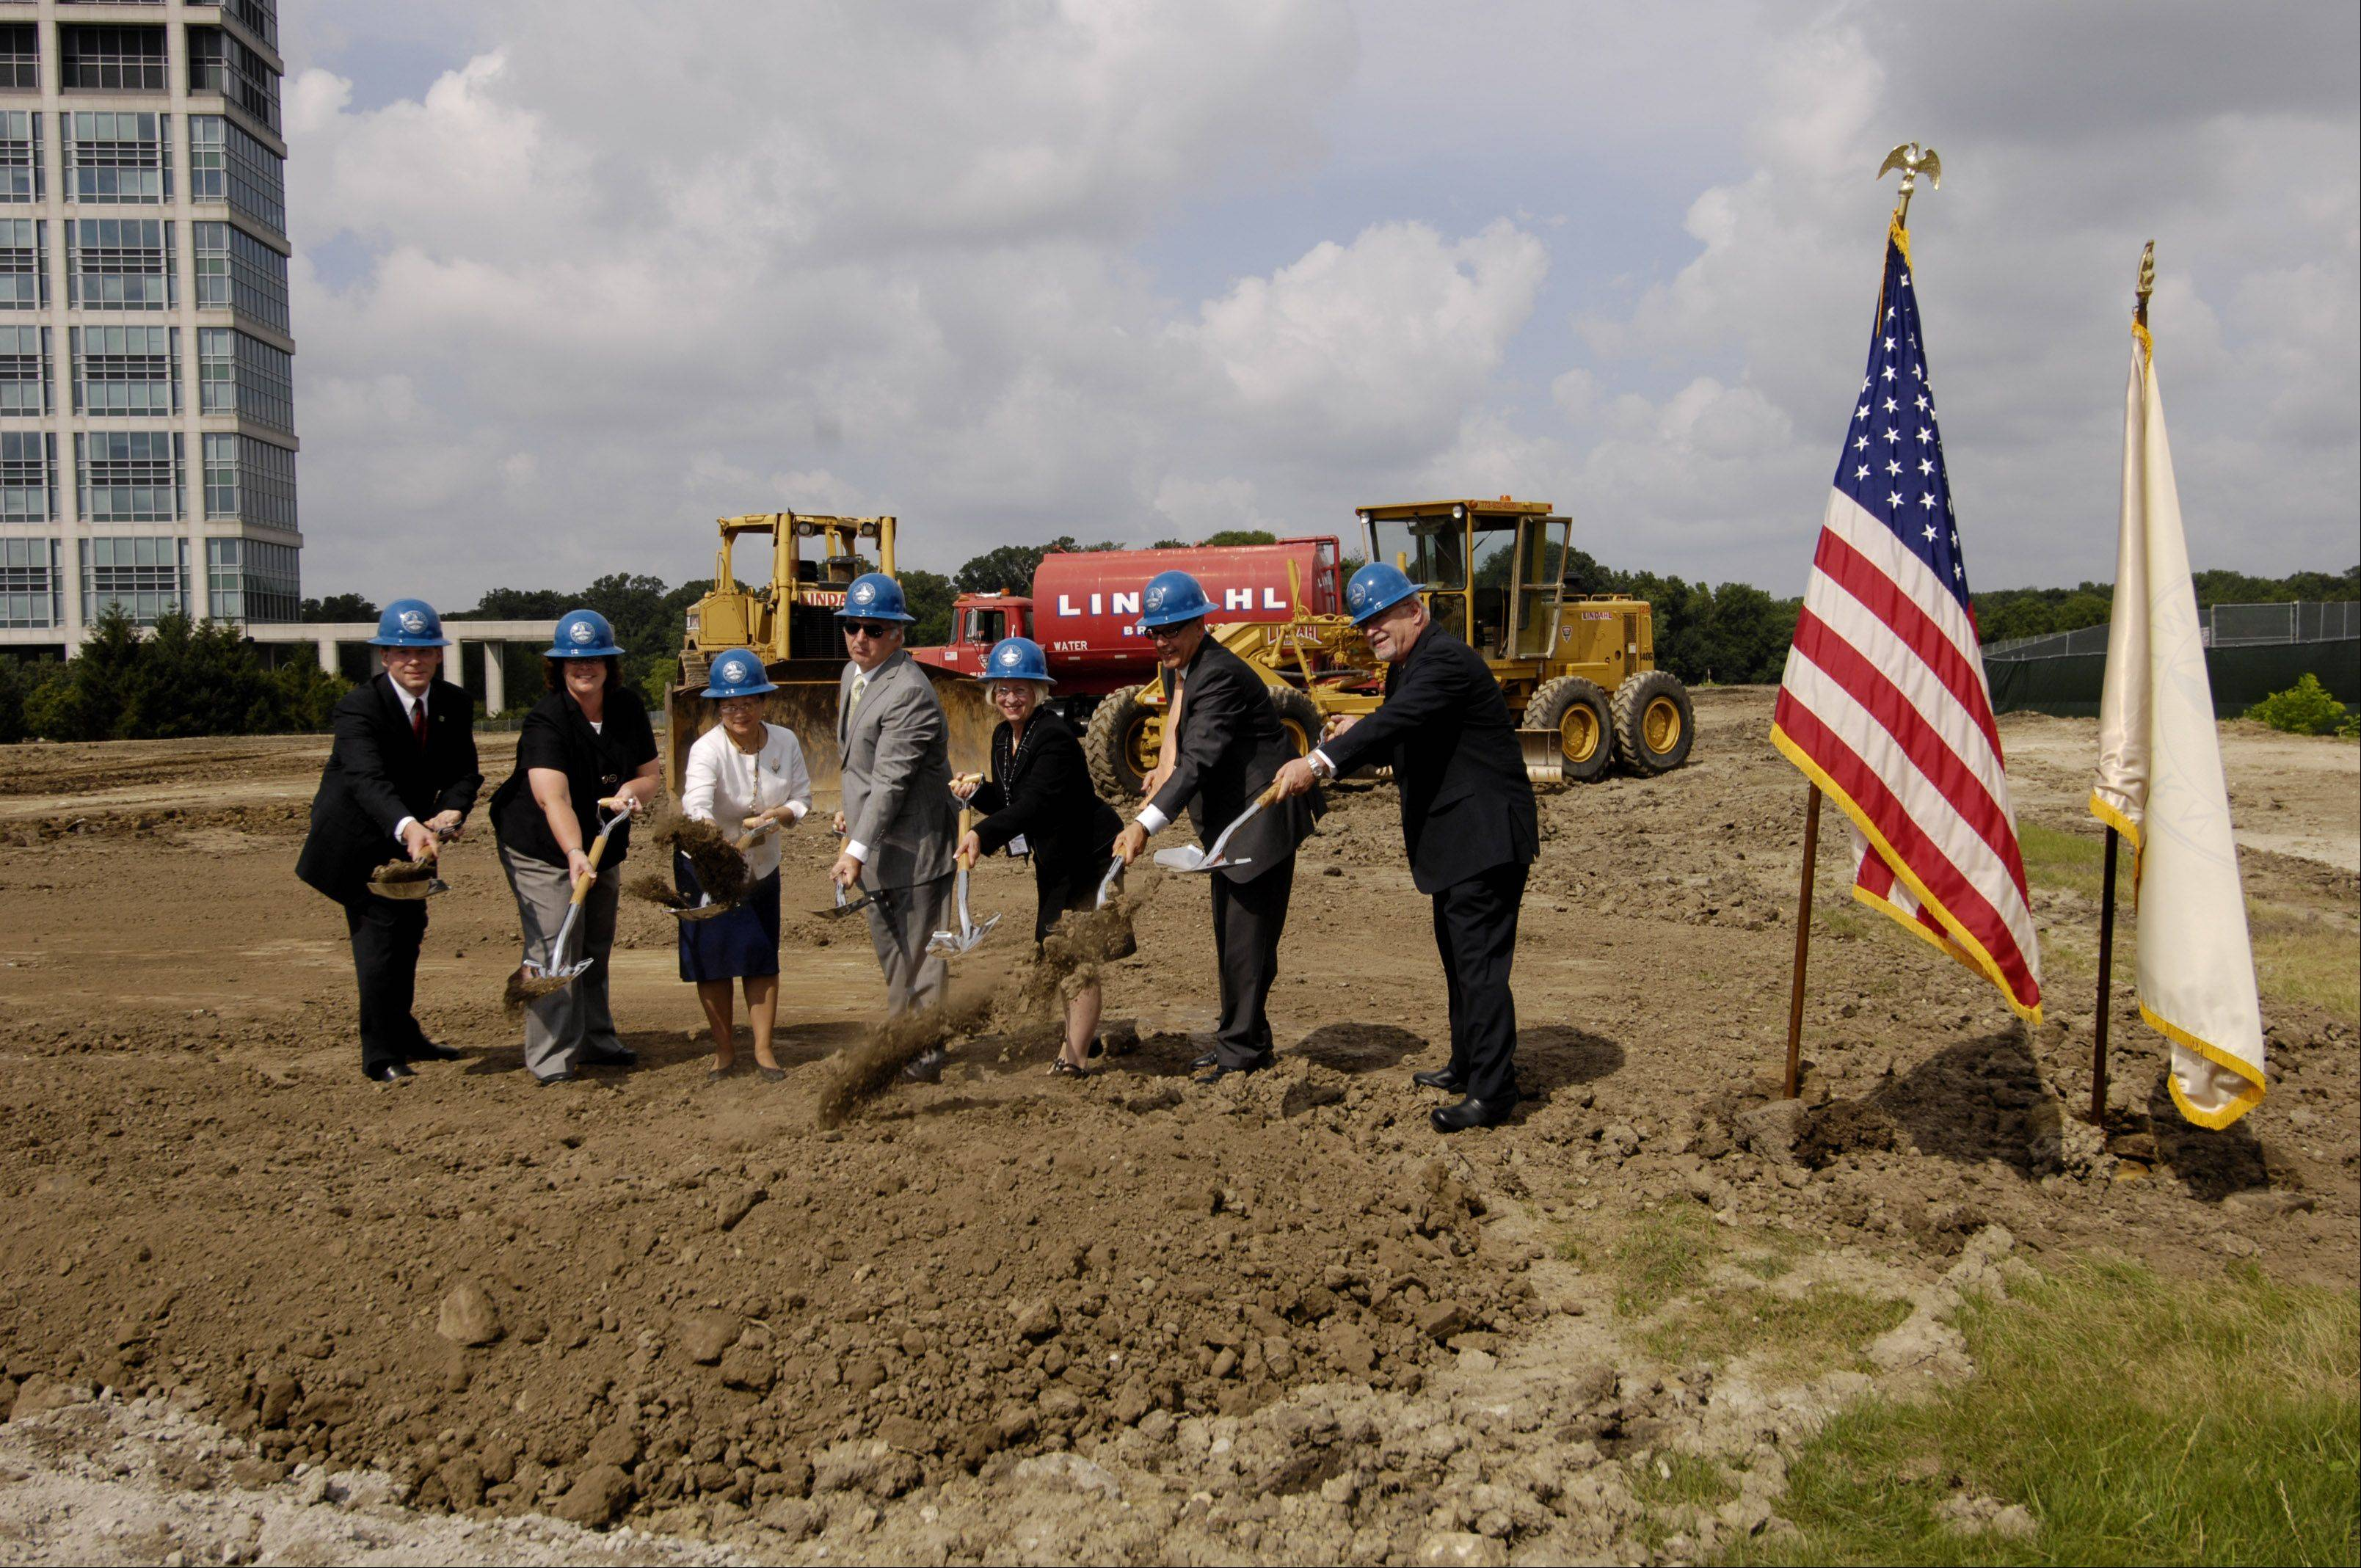 Midwestern University officials and civic leaders broke ground Monday on a new Midwestern University dental clinic in Downers Grove. It's expected to serve patients around DuPage County starting in 2013.